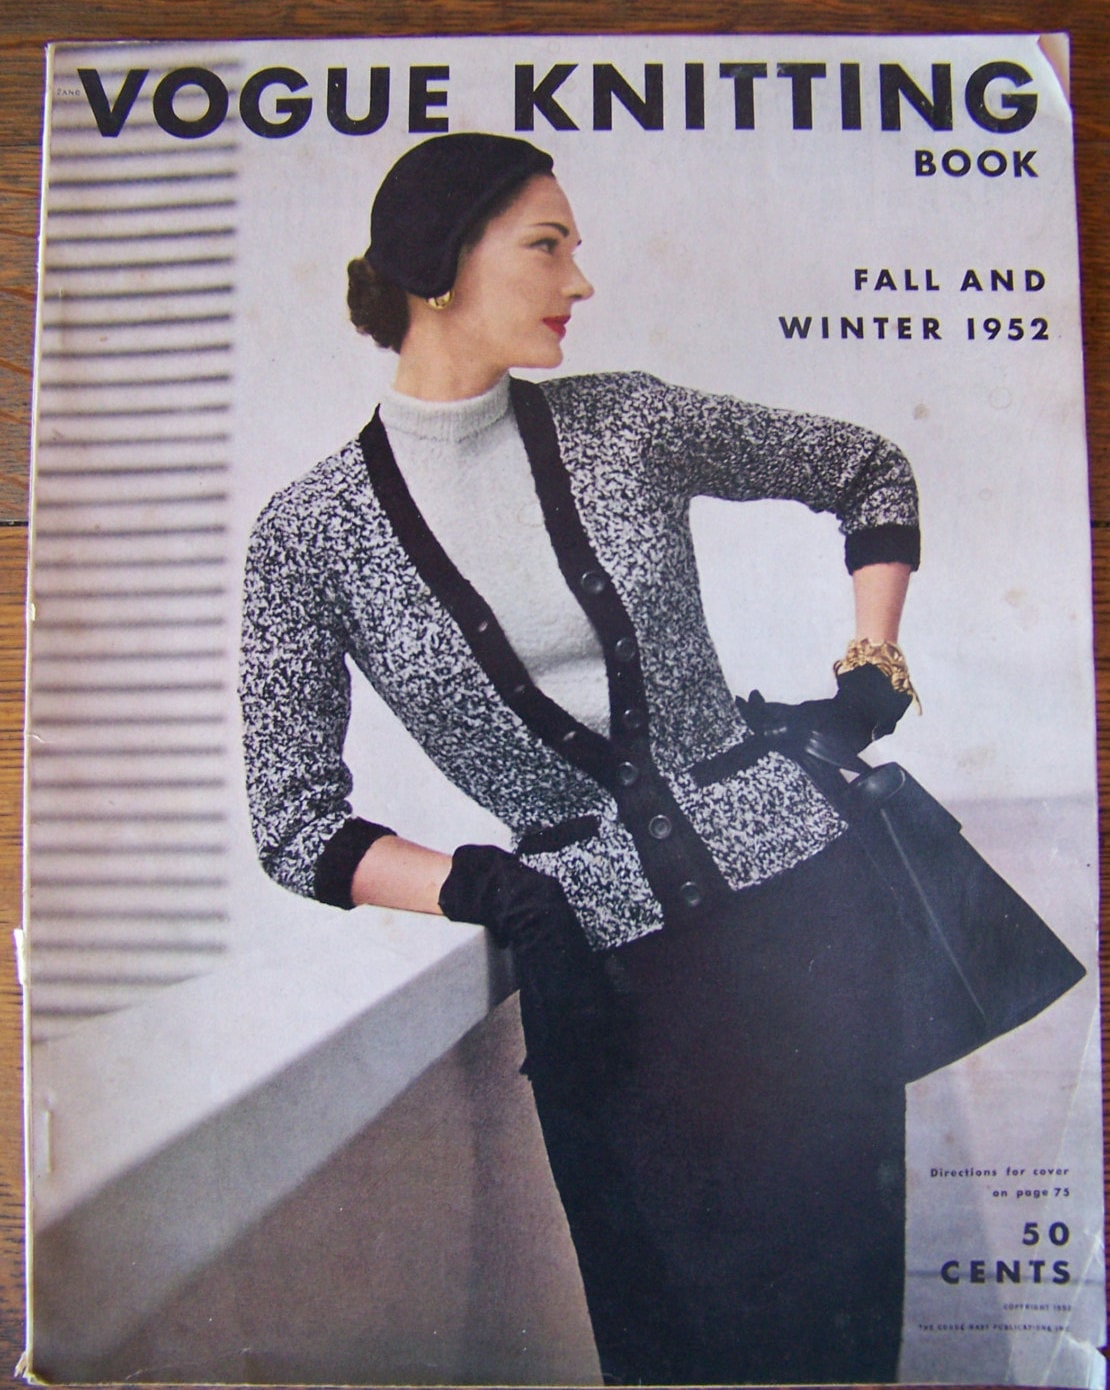 Vintage vogue knitting book 1952 fall and winterntage 1950s sold by lesaestes bankloansurffo Choice Image